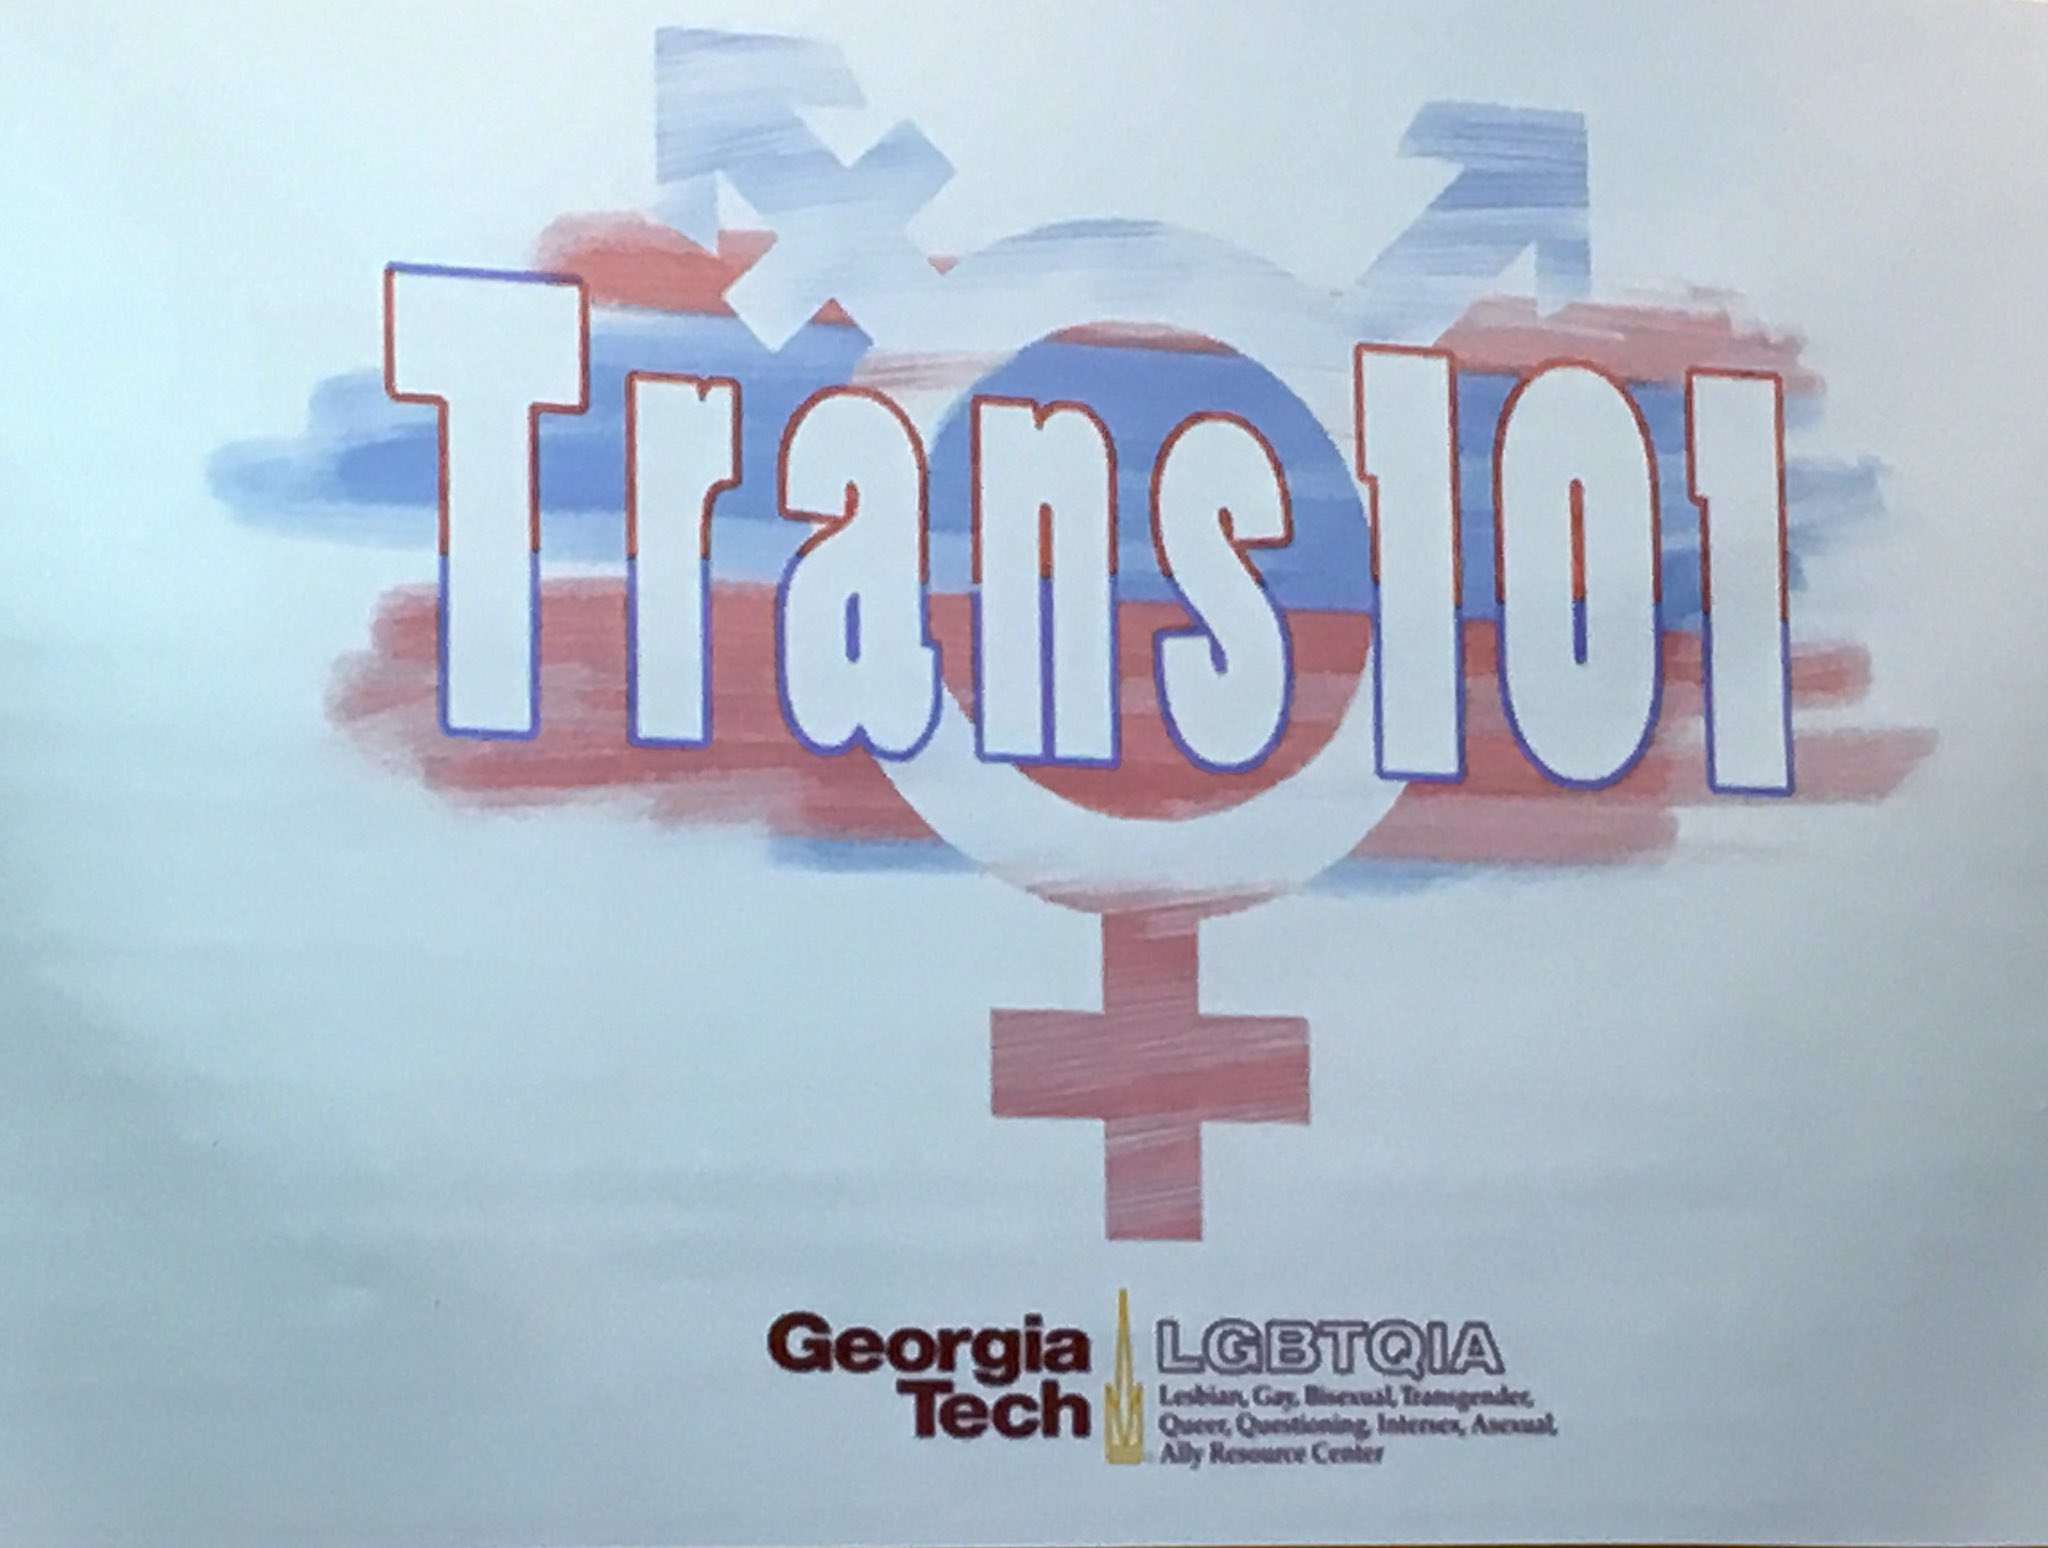 Happening now: GT trans 101 allyship training at @GeorgiaTech @GT_LGBTQIA @GT_Diversity https://t.co/aIfZolAvgK